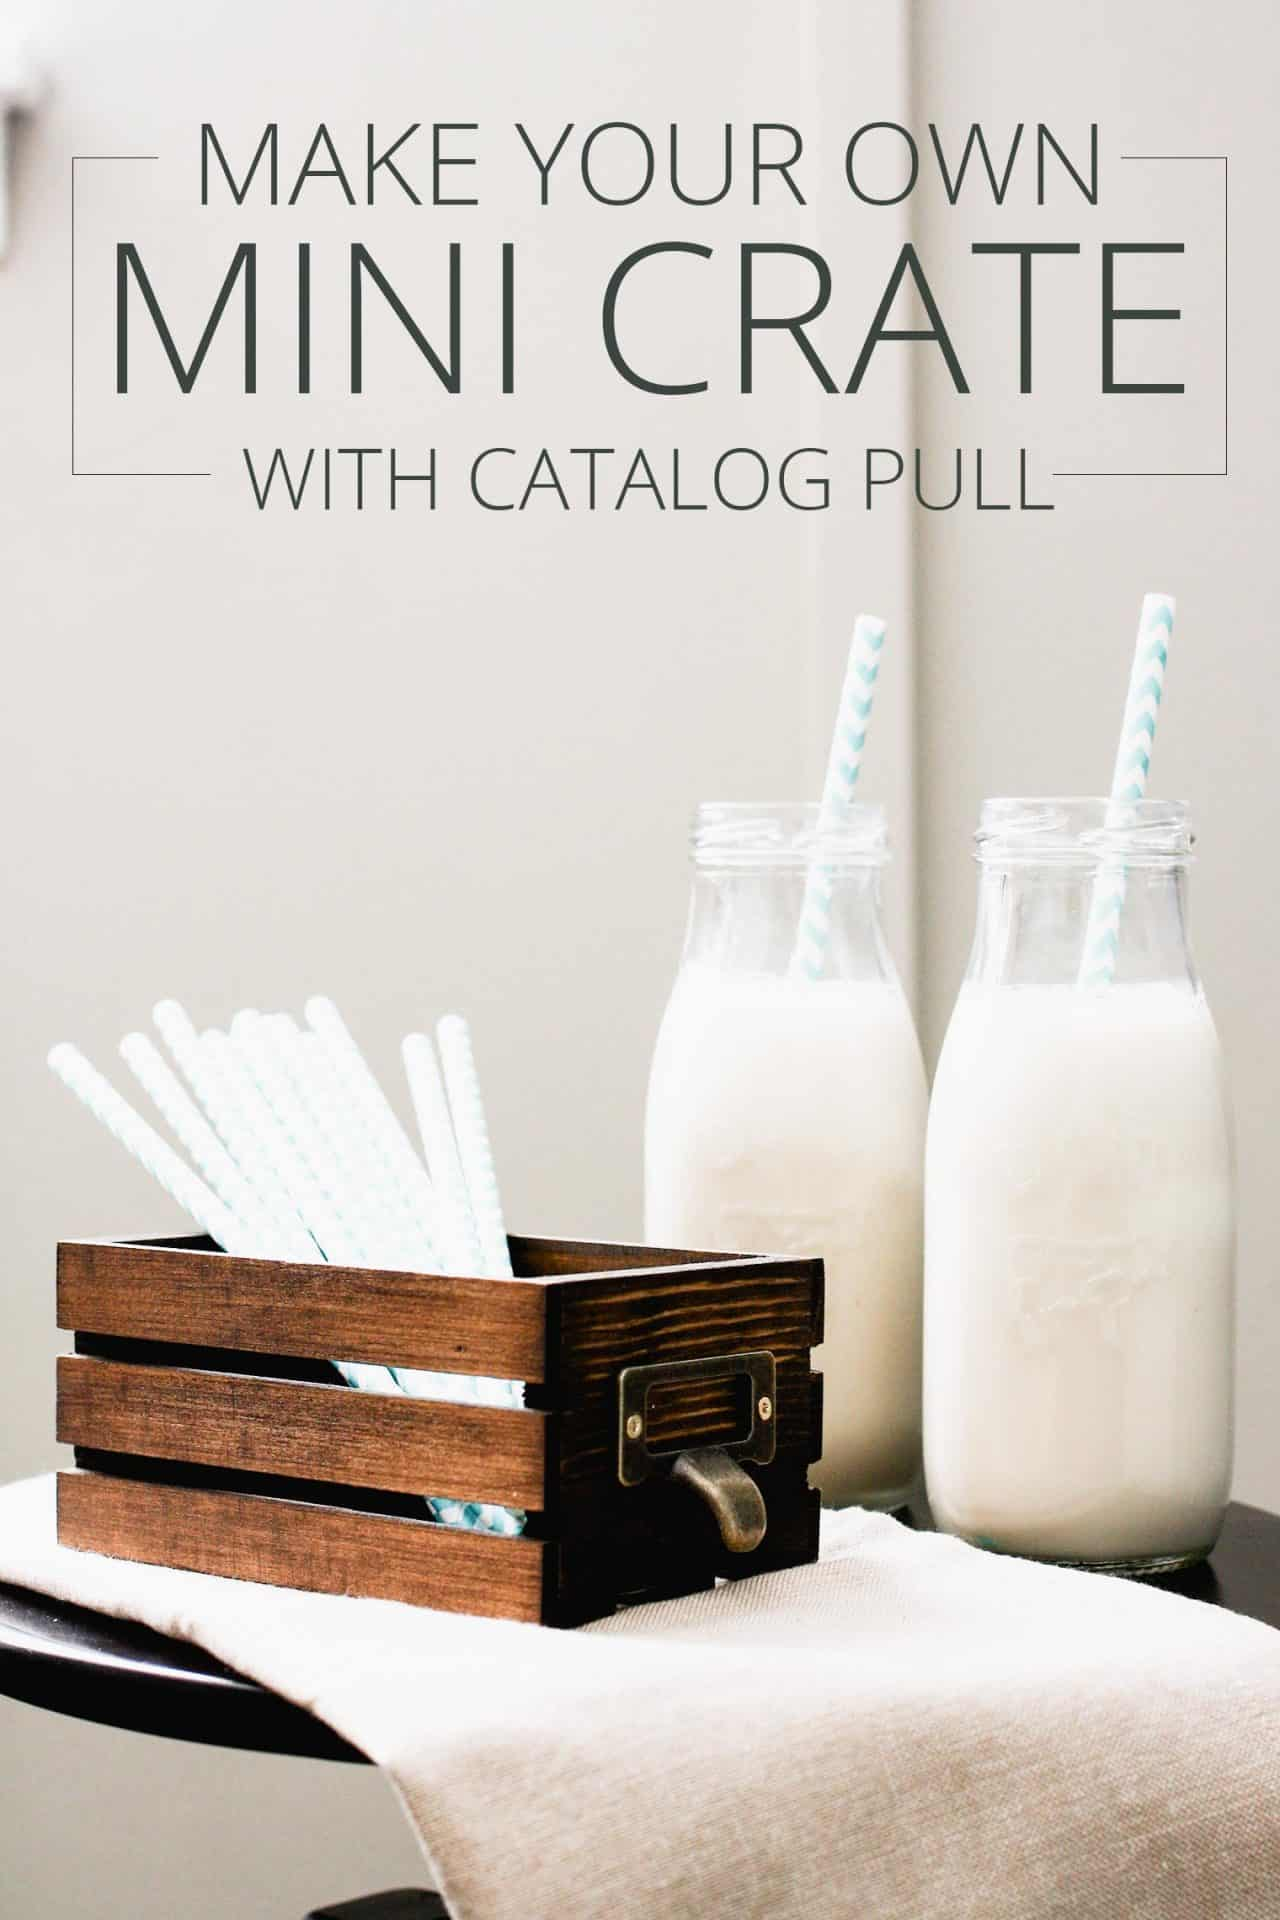 mini crate with pull, straws inside, two bottles of milk with straws